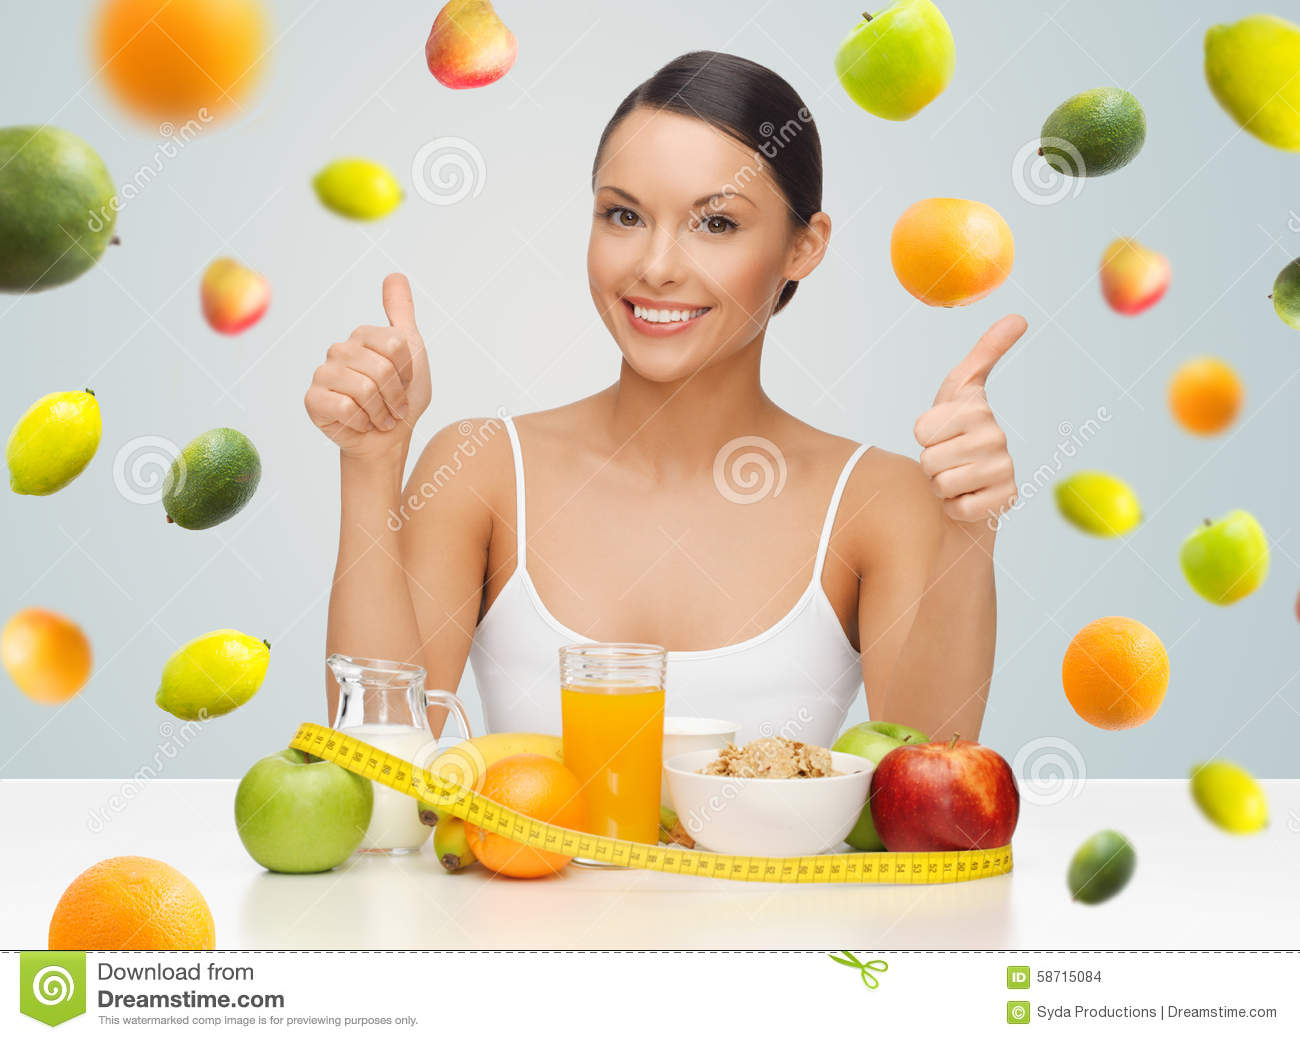 happy-woman-healthy-food-showing-thumbs-up-people-gesture-diet-concept-asian-over-gray-background-falling-fruits-58715084.jpg